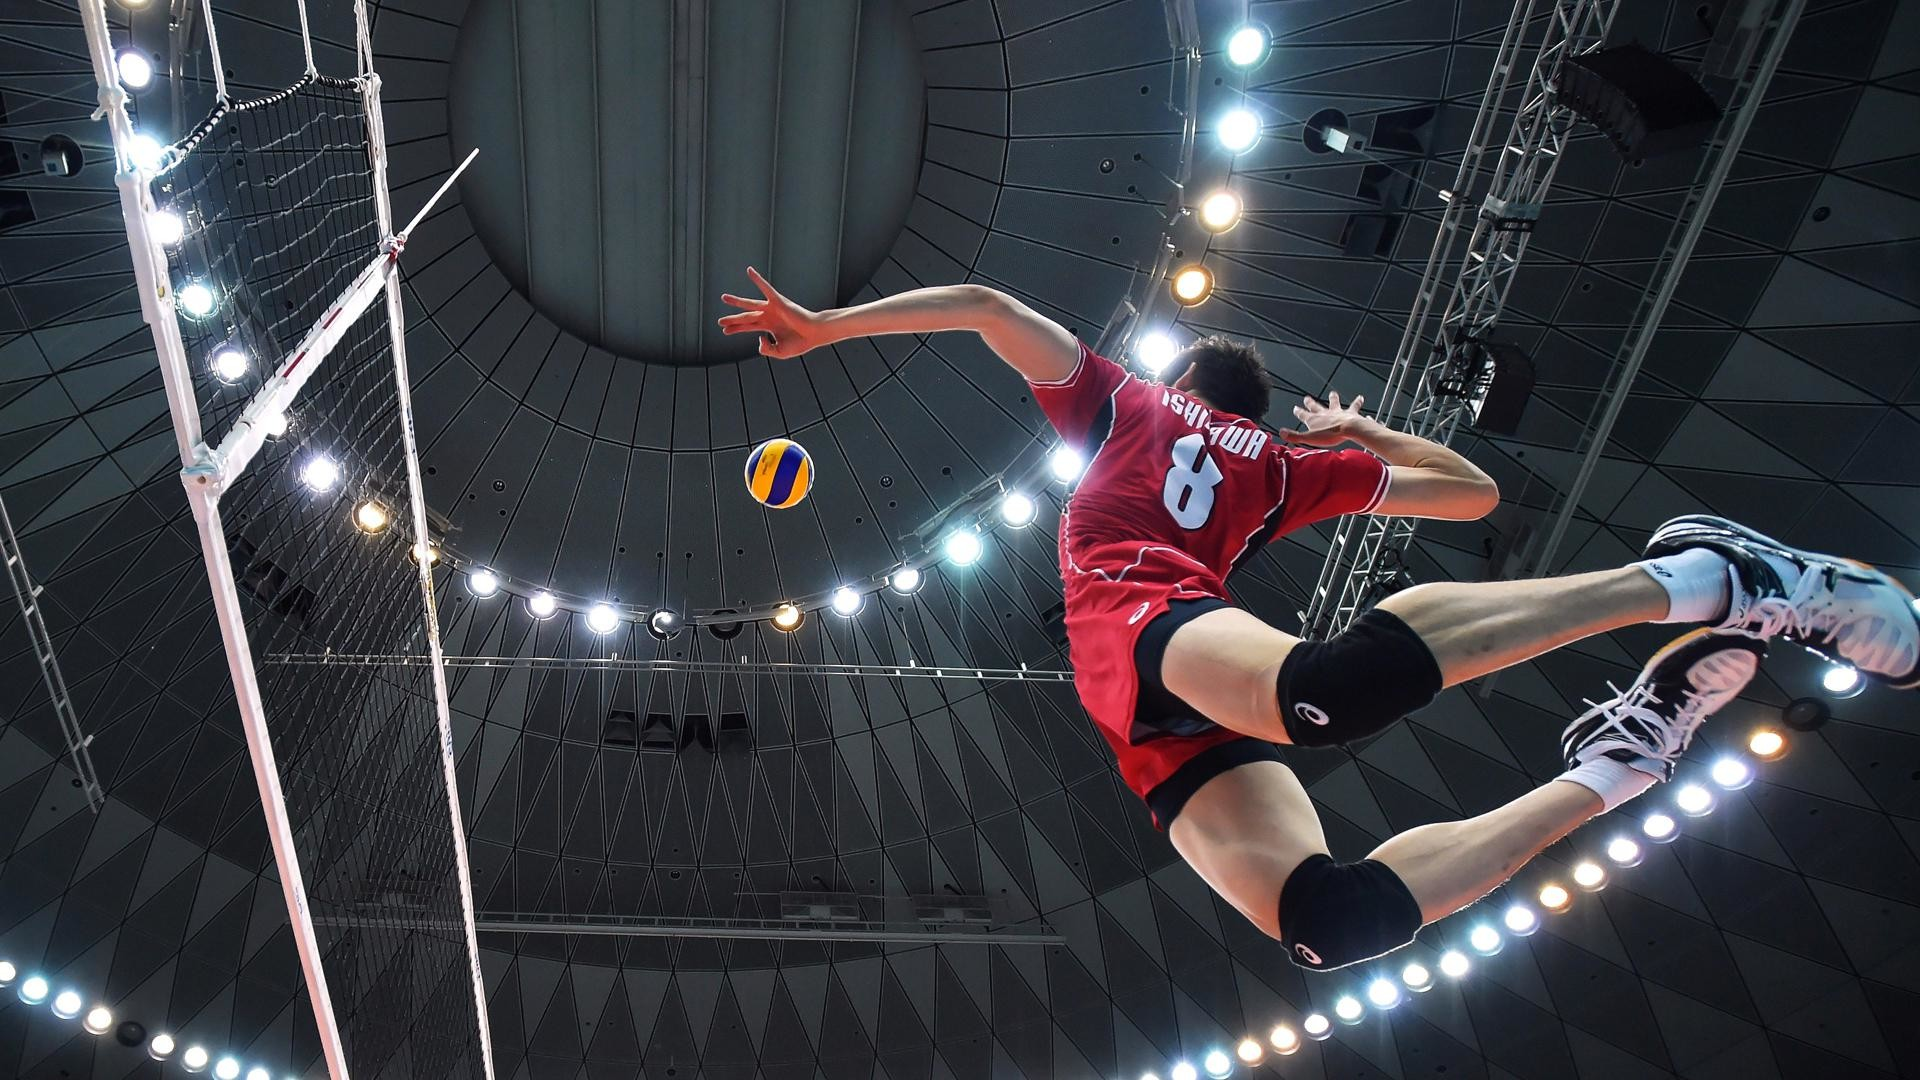 915239-free-download-volleyball-wallpapers-1920x1080-for-windows-10